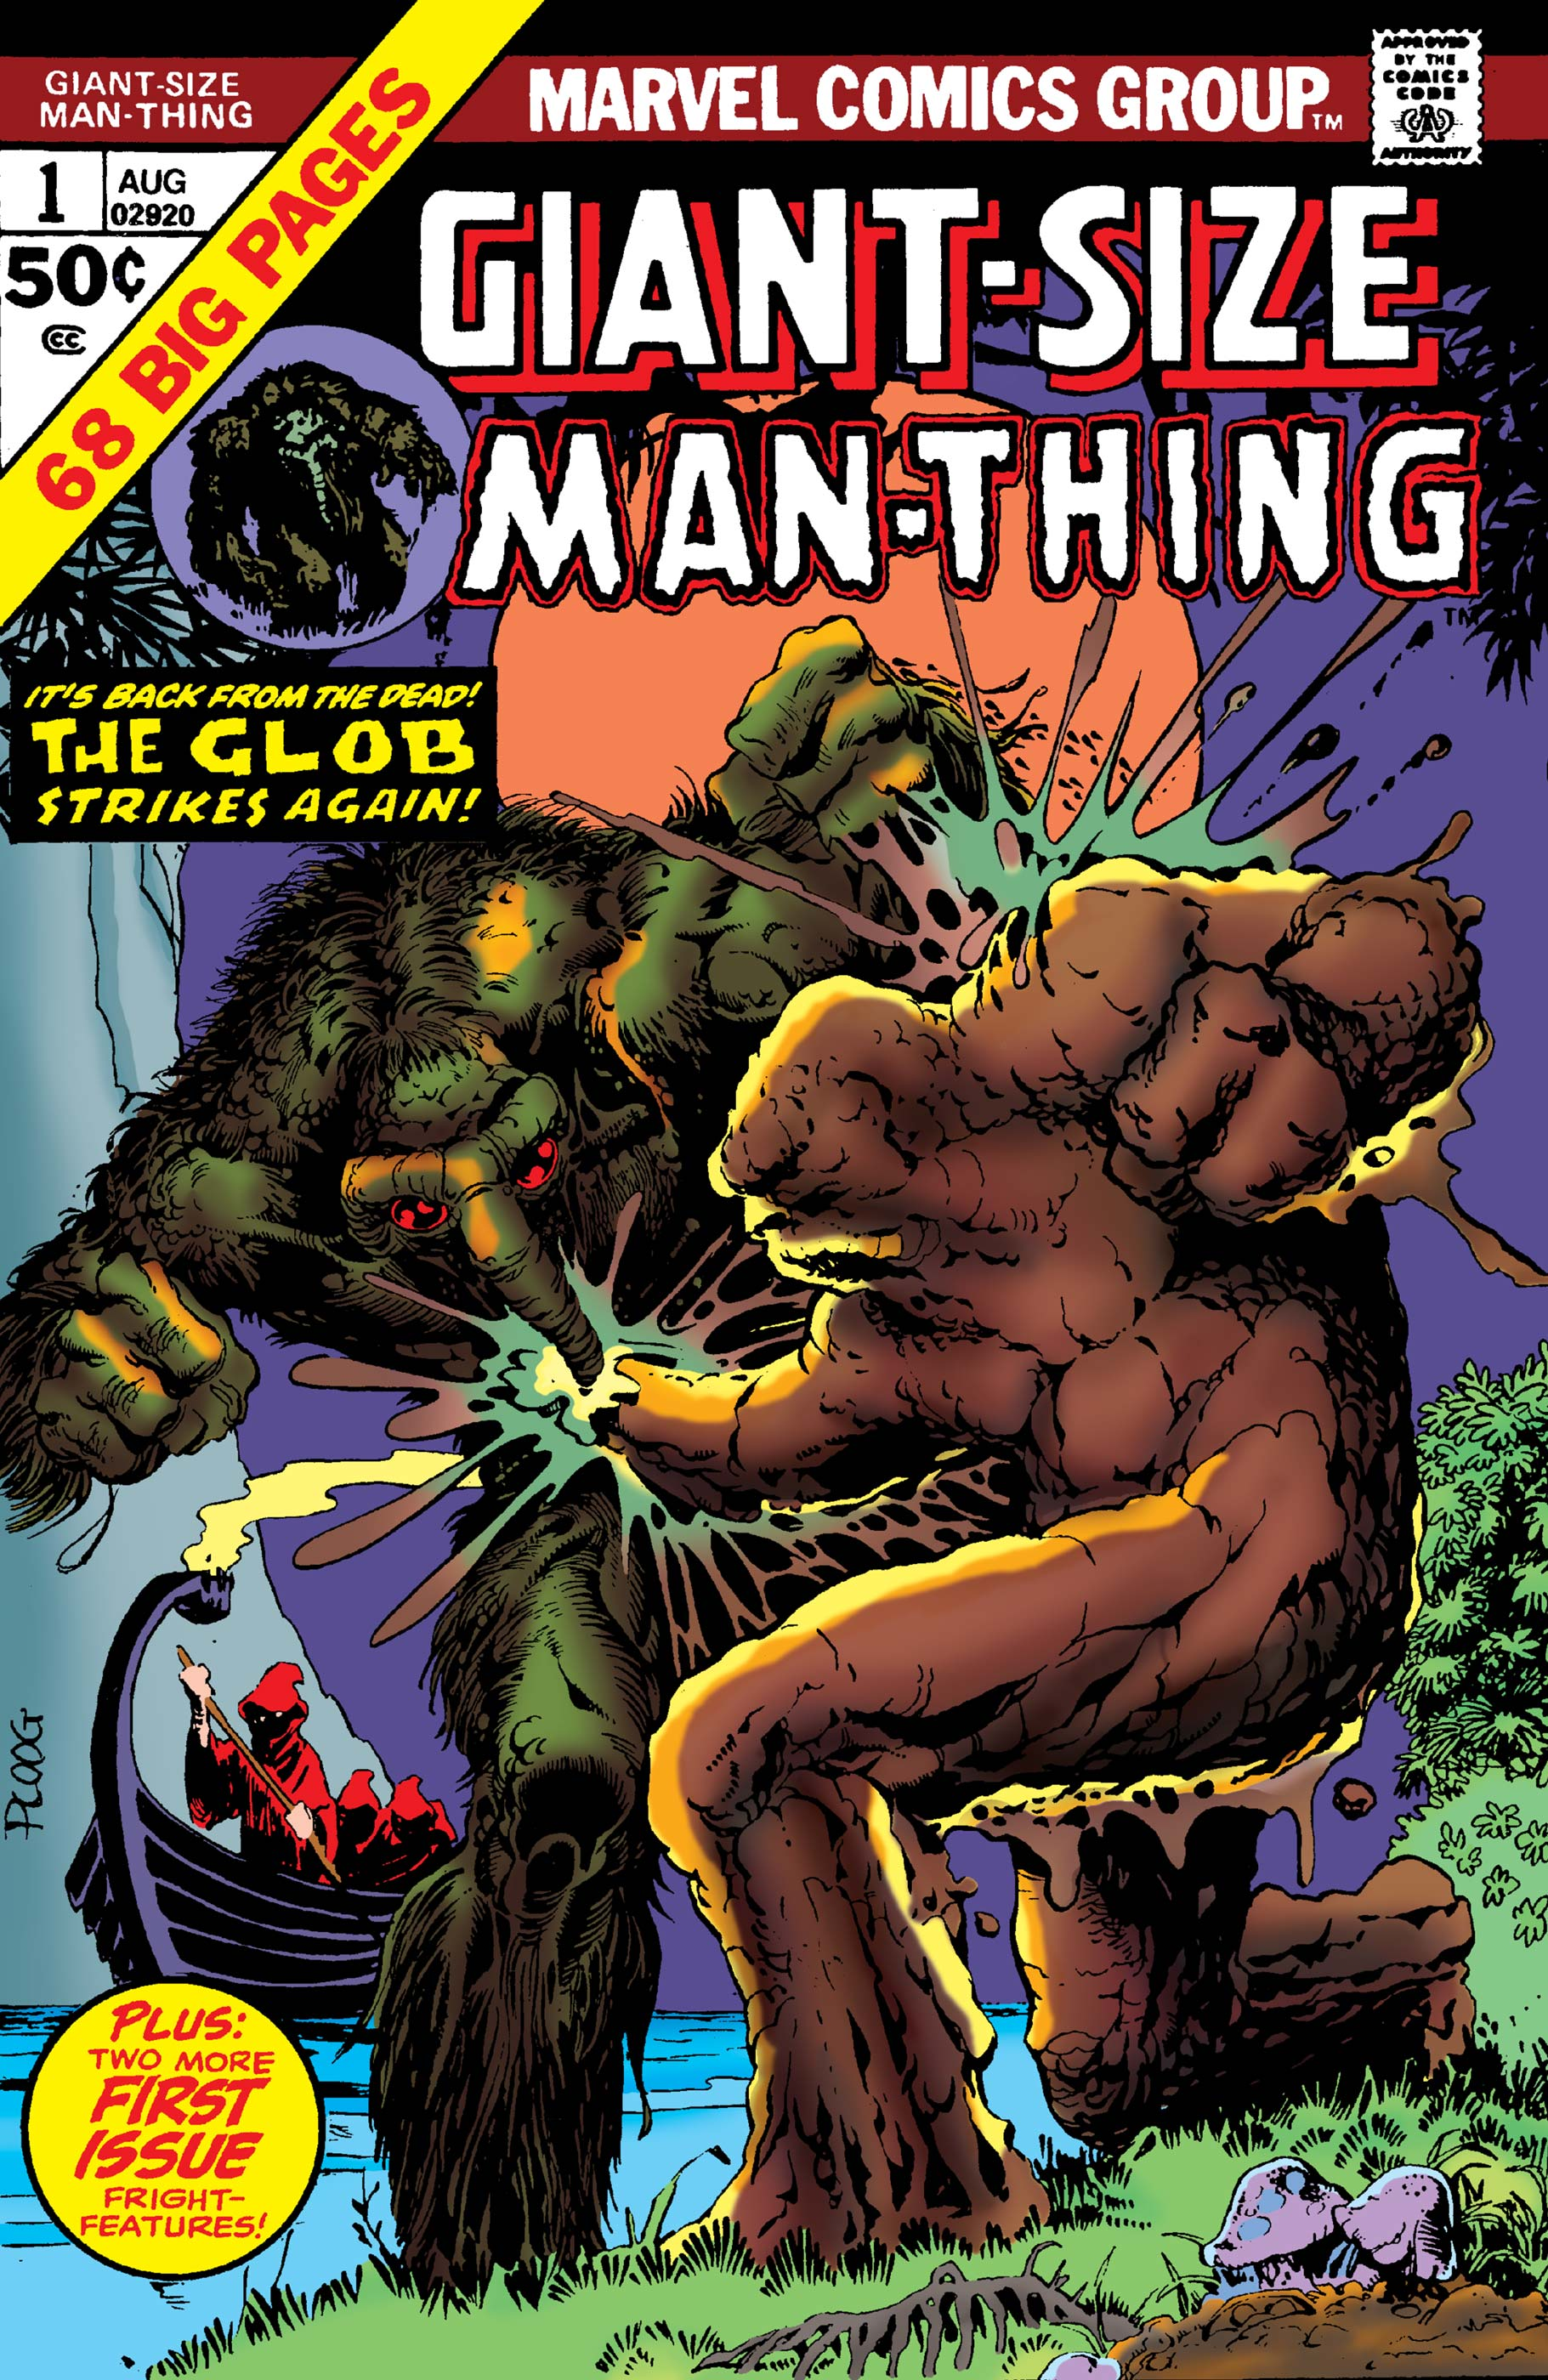 Giant-Size Man-Thing (1974) #1